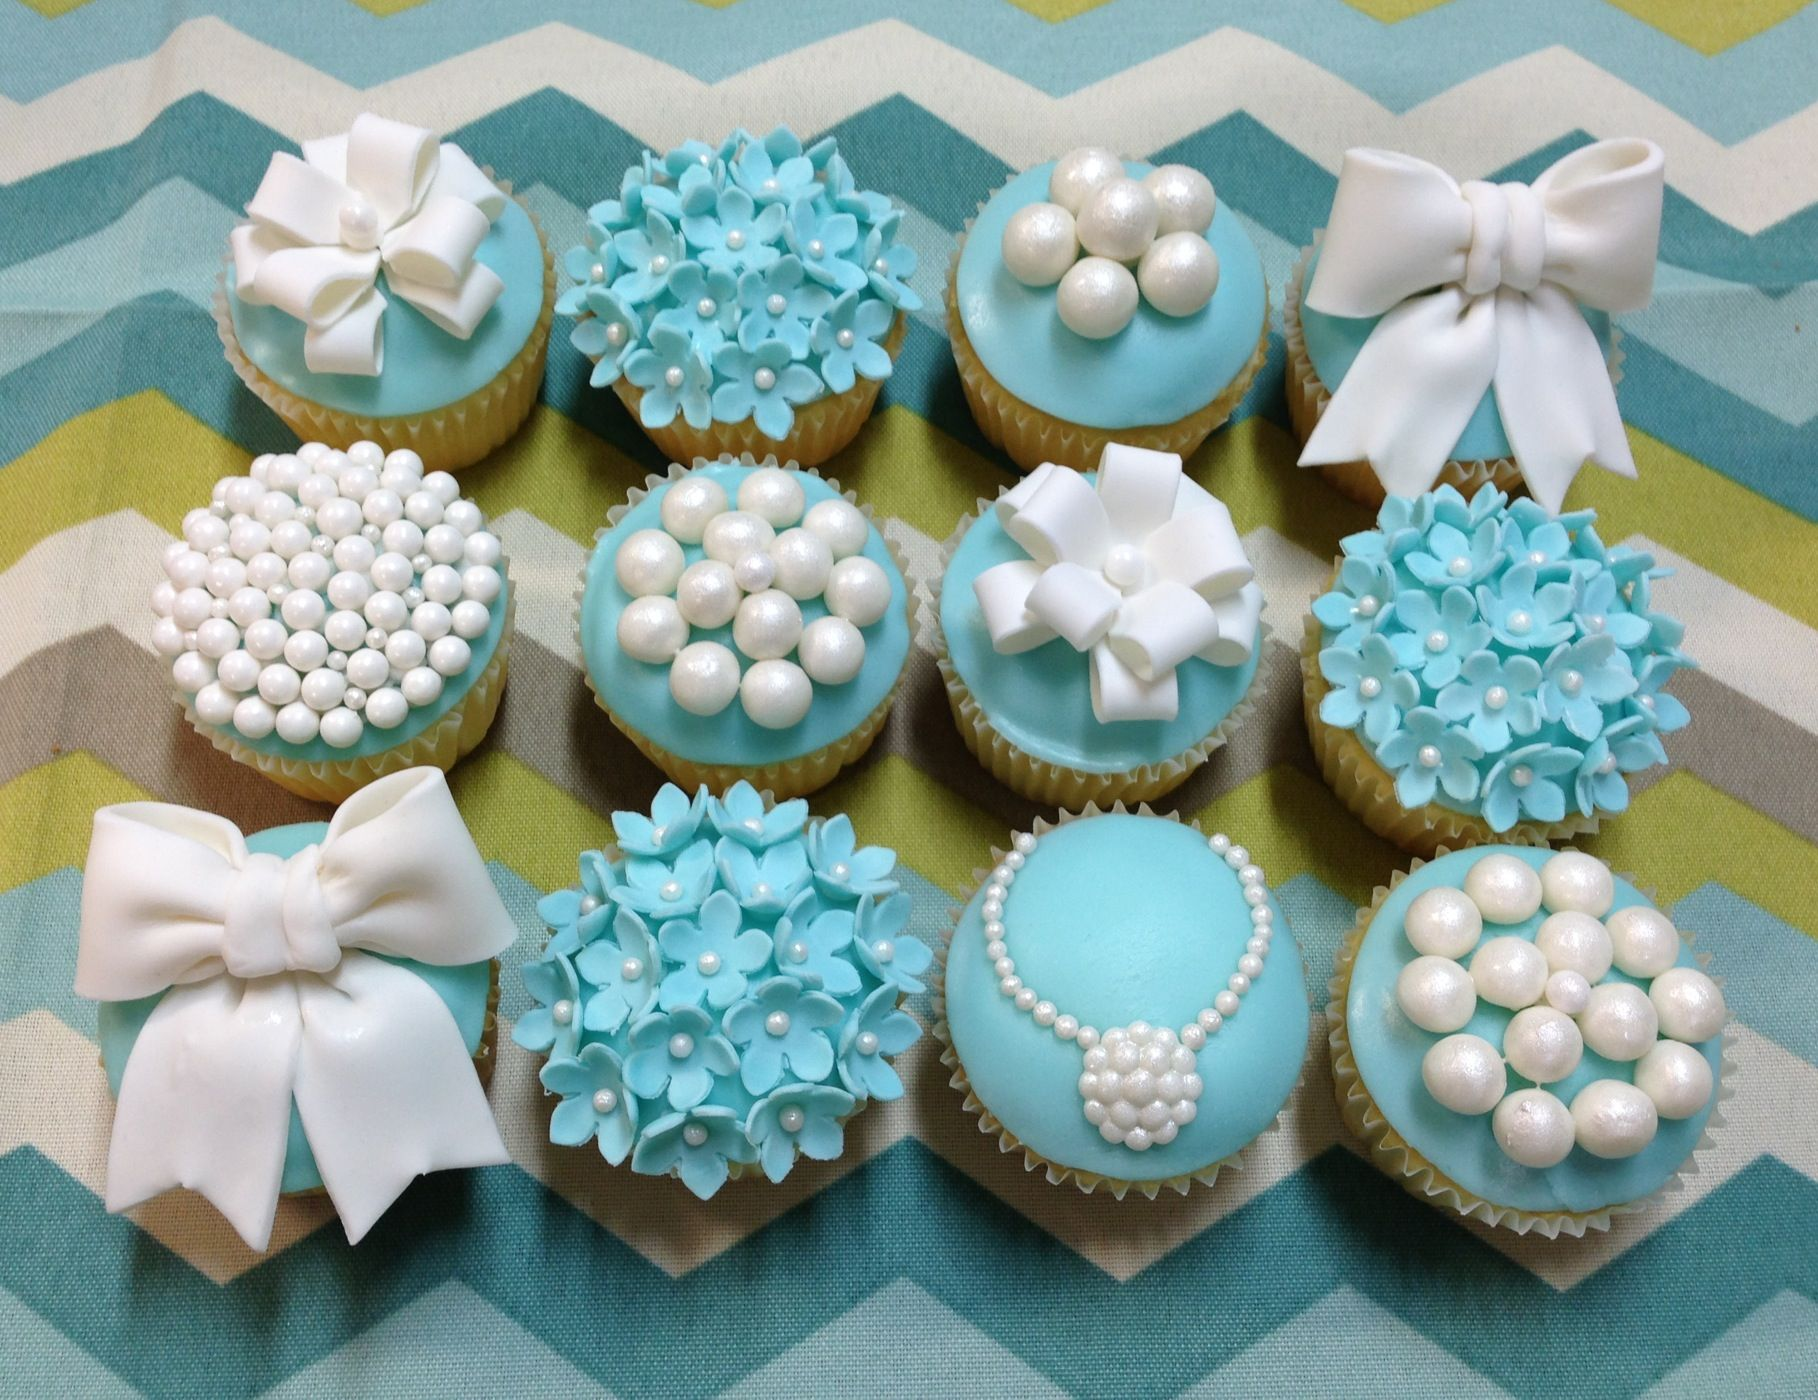 Tiffany And Pearl Cake And Cupcakes  Tiffany Blue And